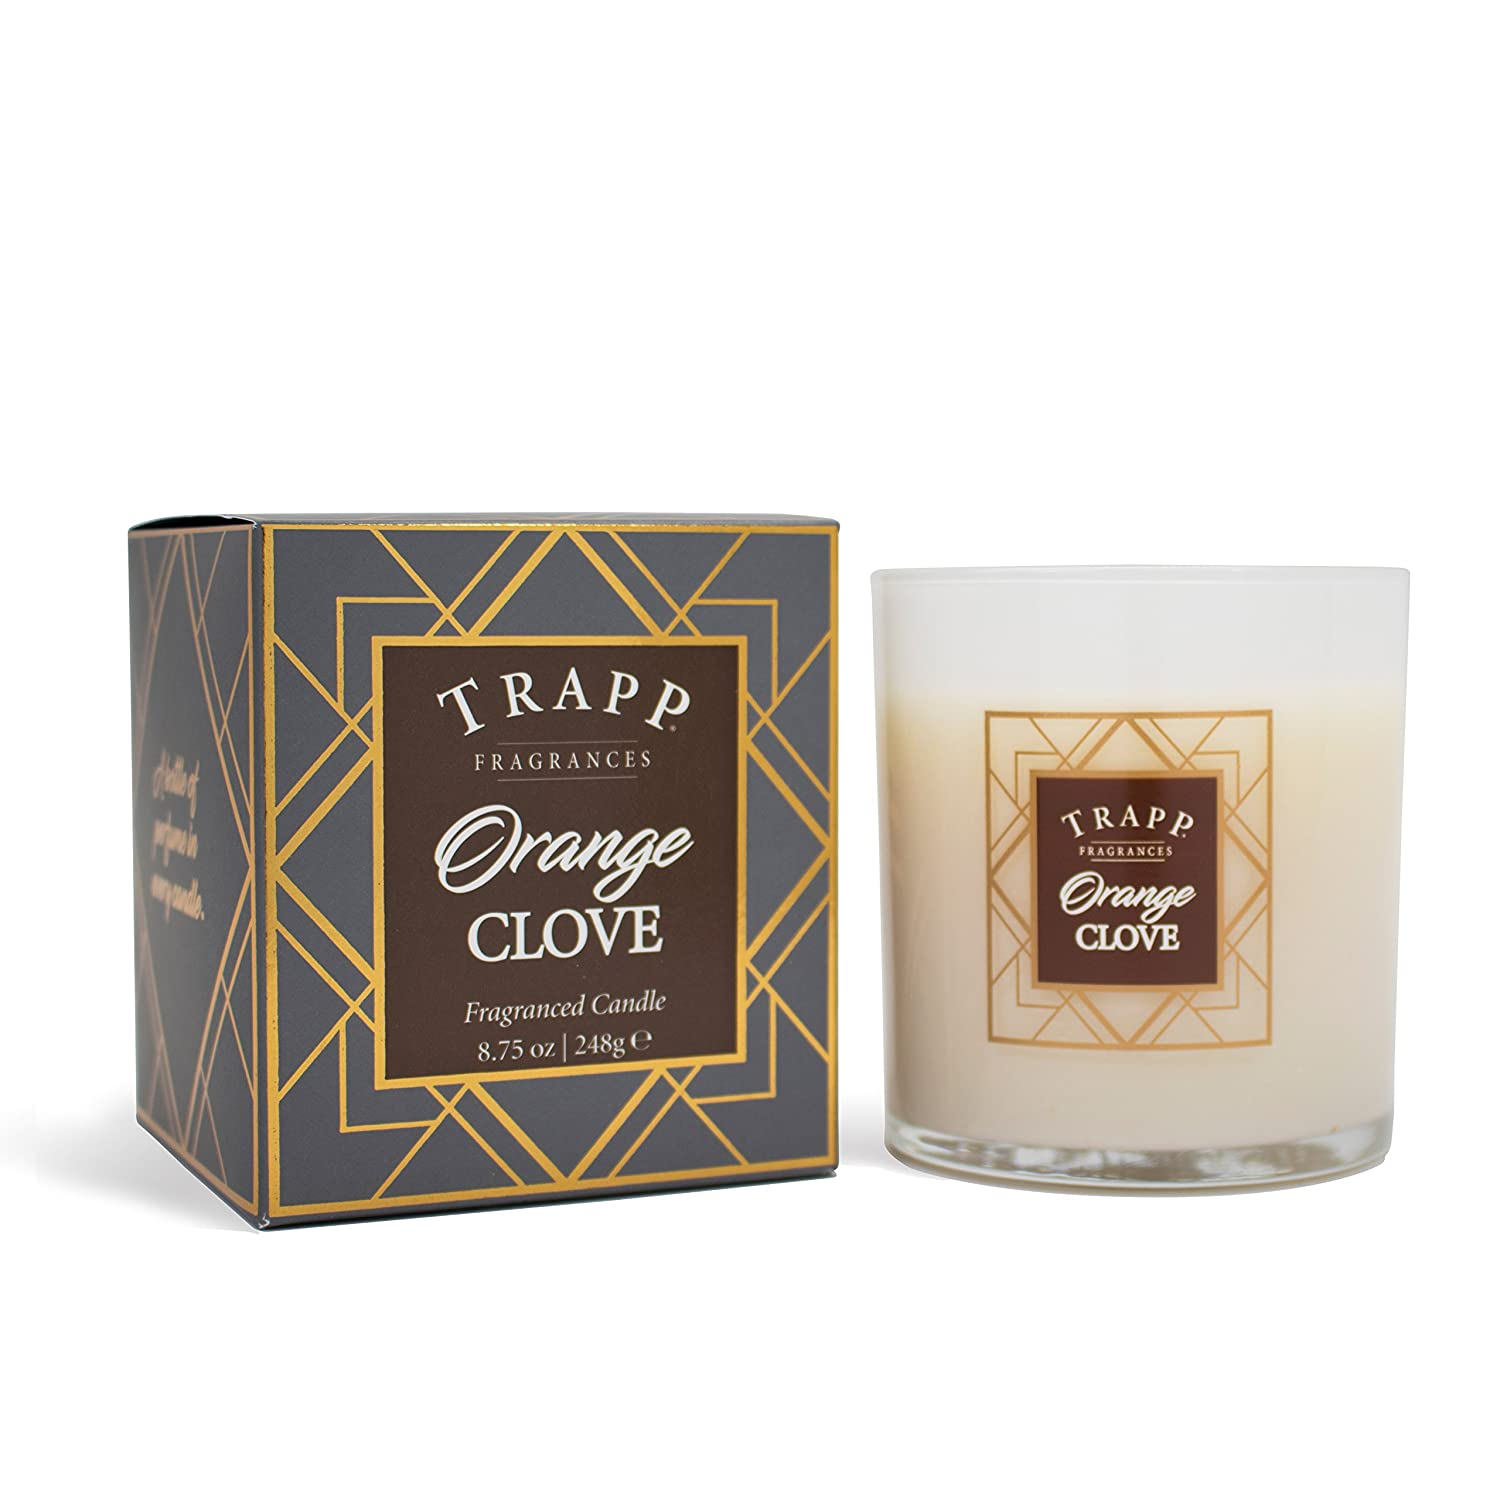 Trapp Seasonal Collection Fireside Pumpkin Poured Scented Candle, 7-Ounce Trapp Fragrances 60794